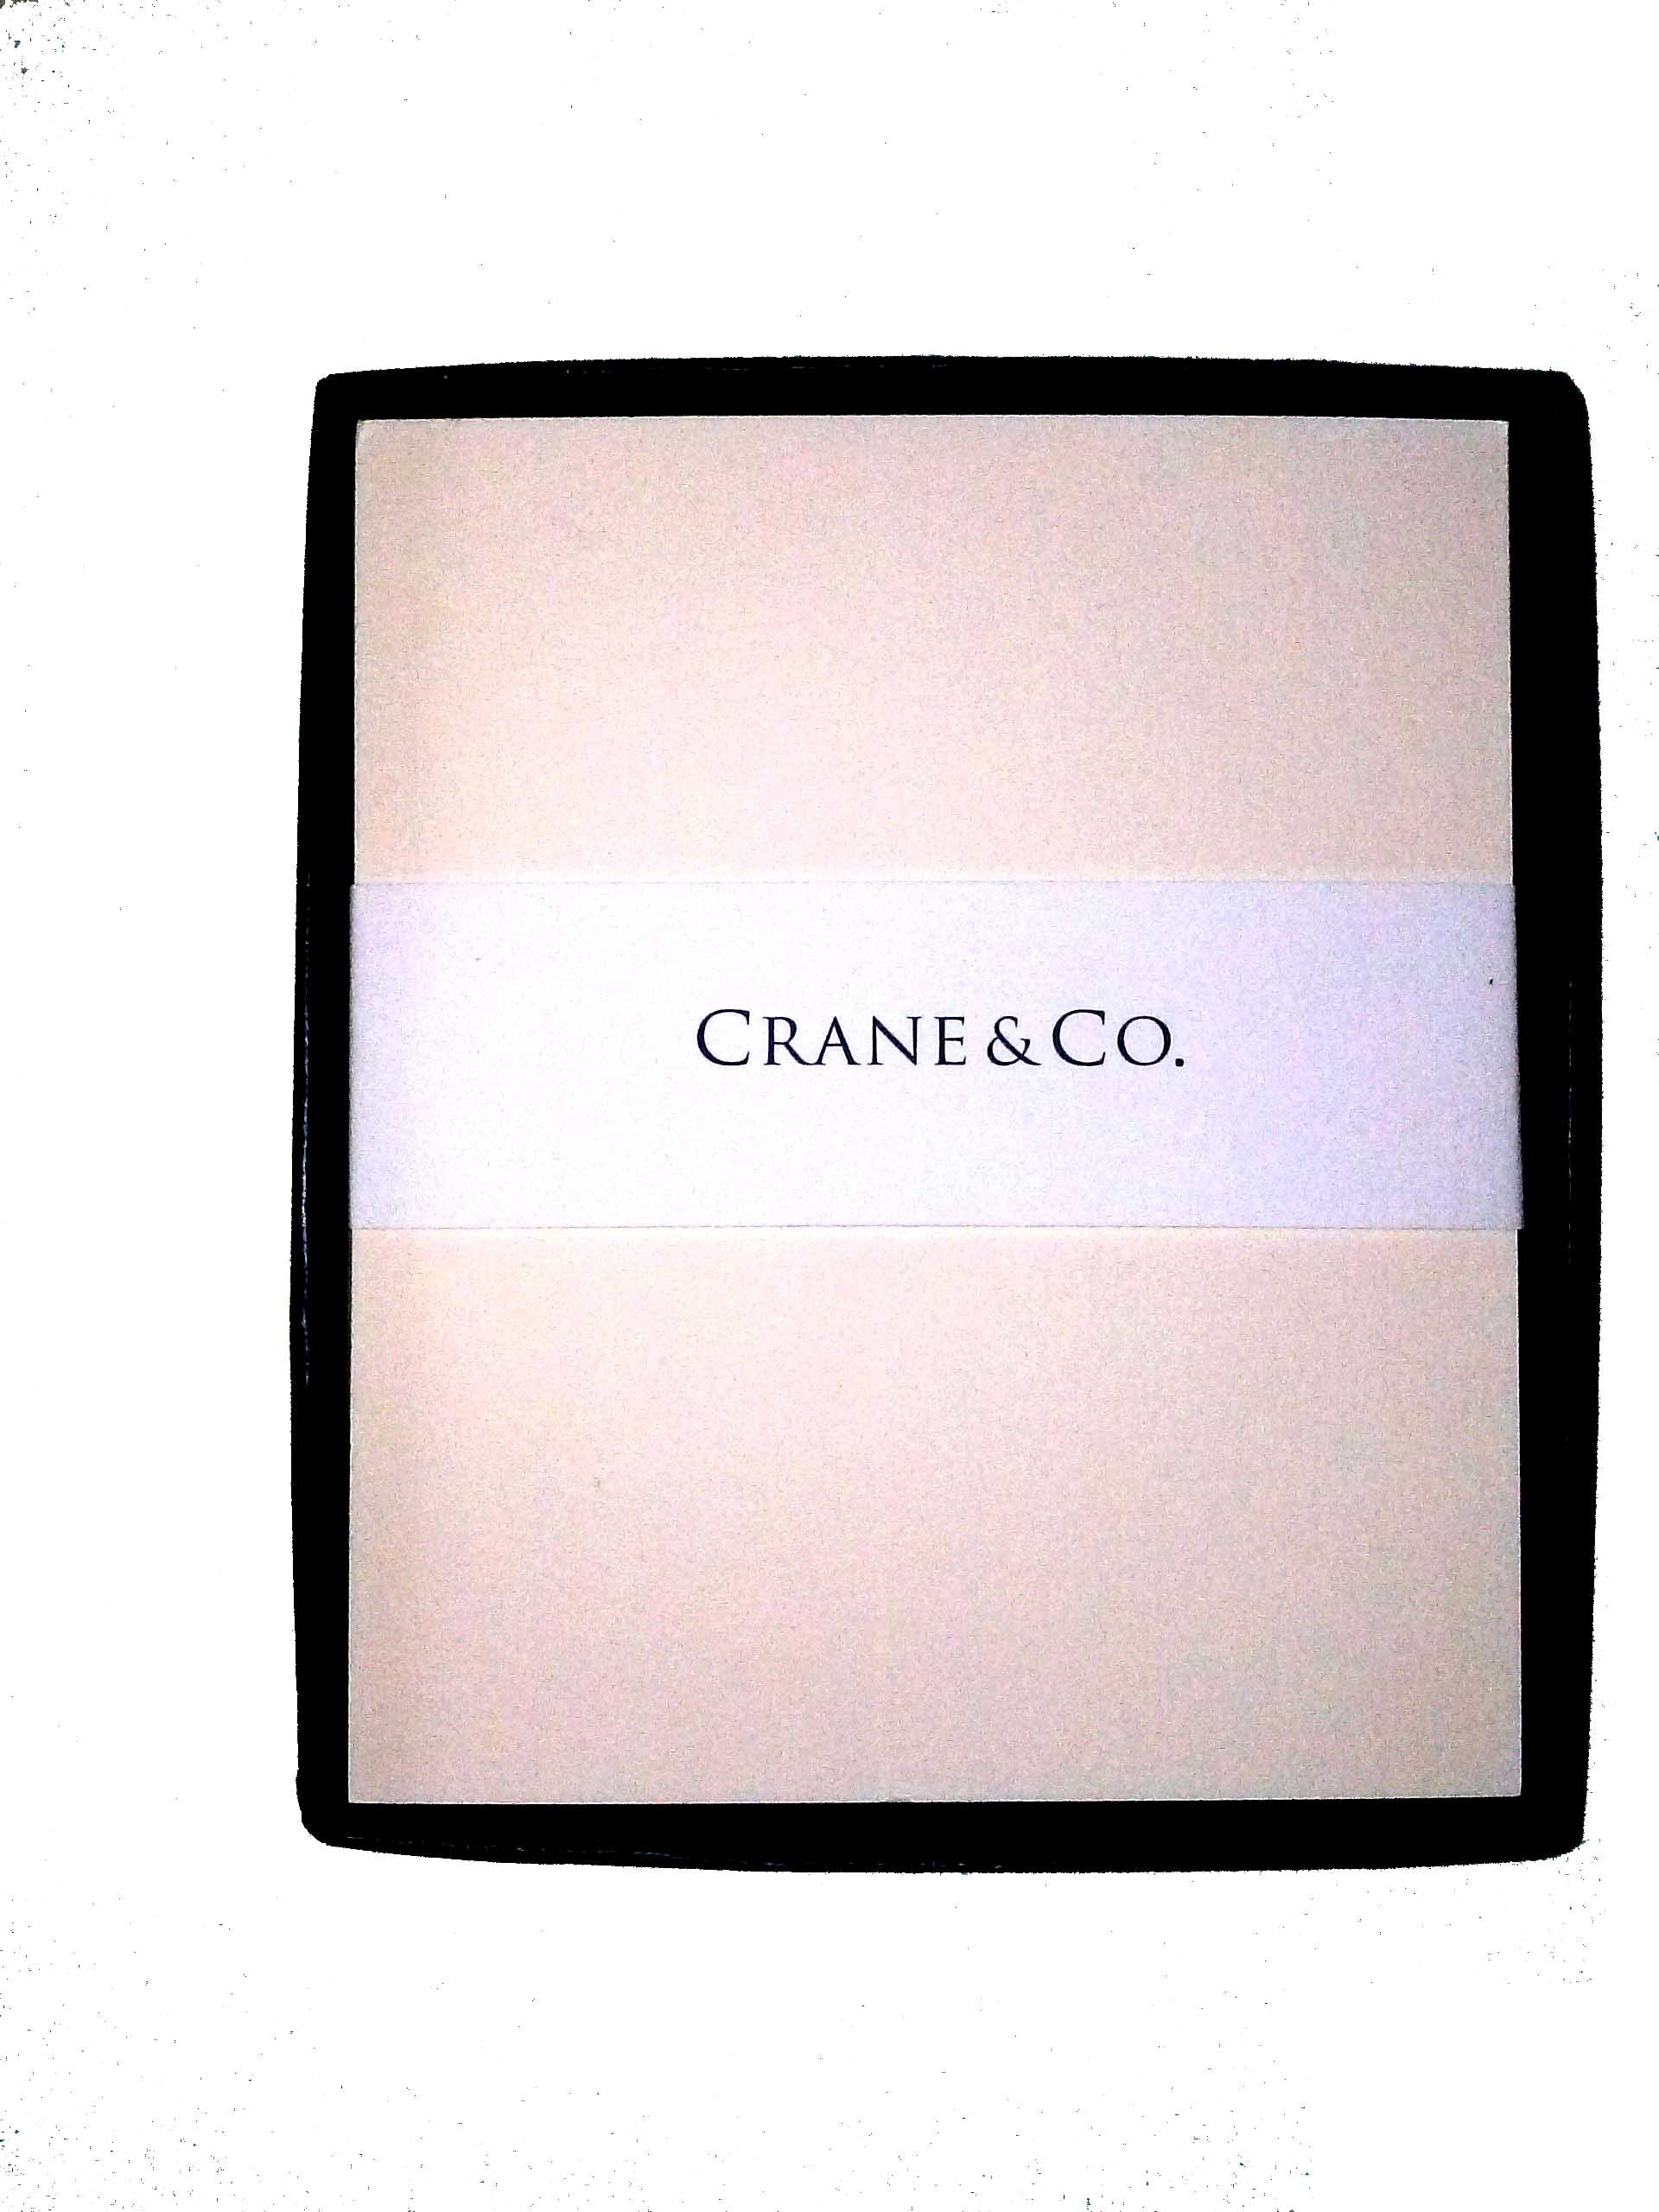 Crane & Co. Cardstock 3 1-2'' x 4'' Sold in Units of 25 Cards (Antique White)